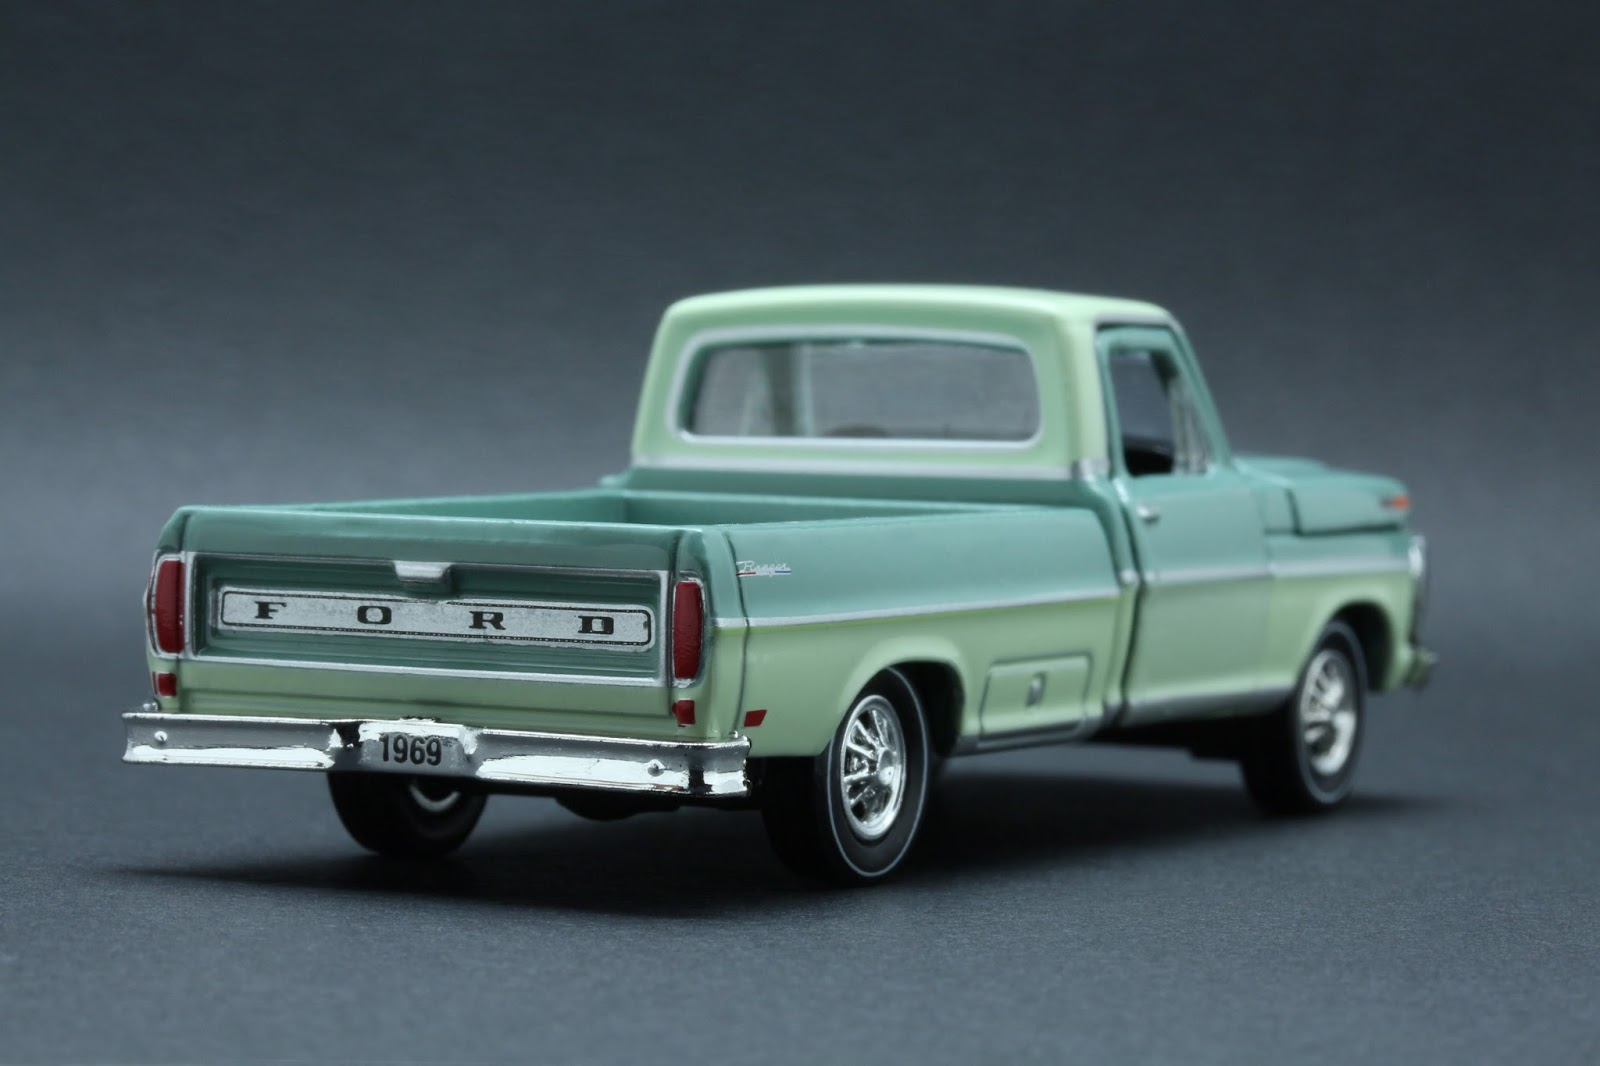 Diecast Hobbist 1969 Ford F 250 Truck Flatbed 164 Scale From M2 Machines Auto Trucks Release 32